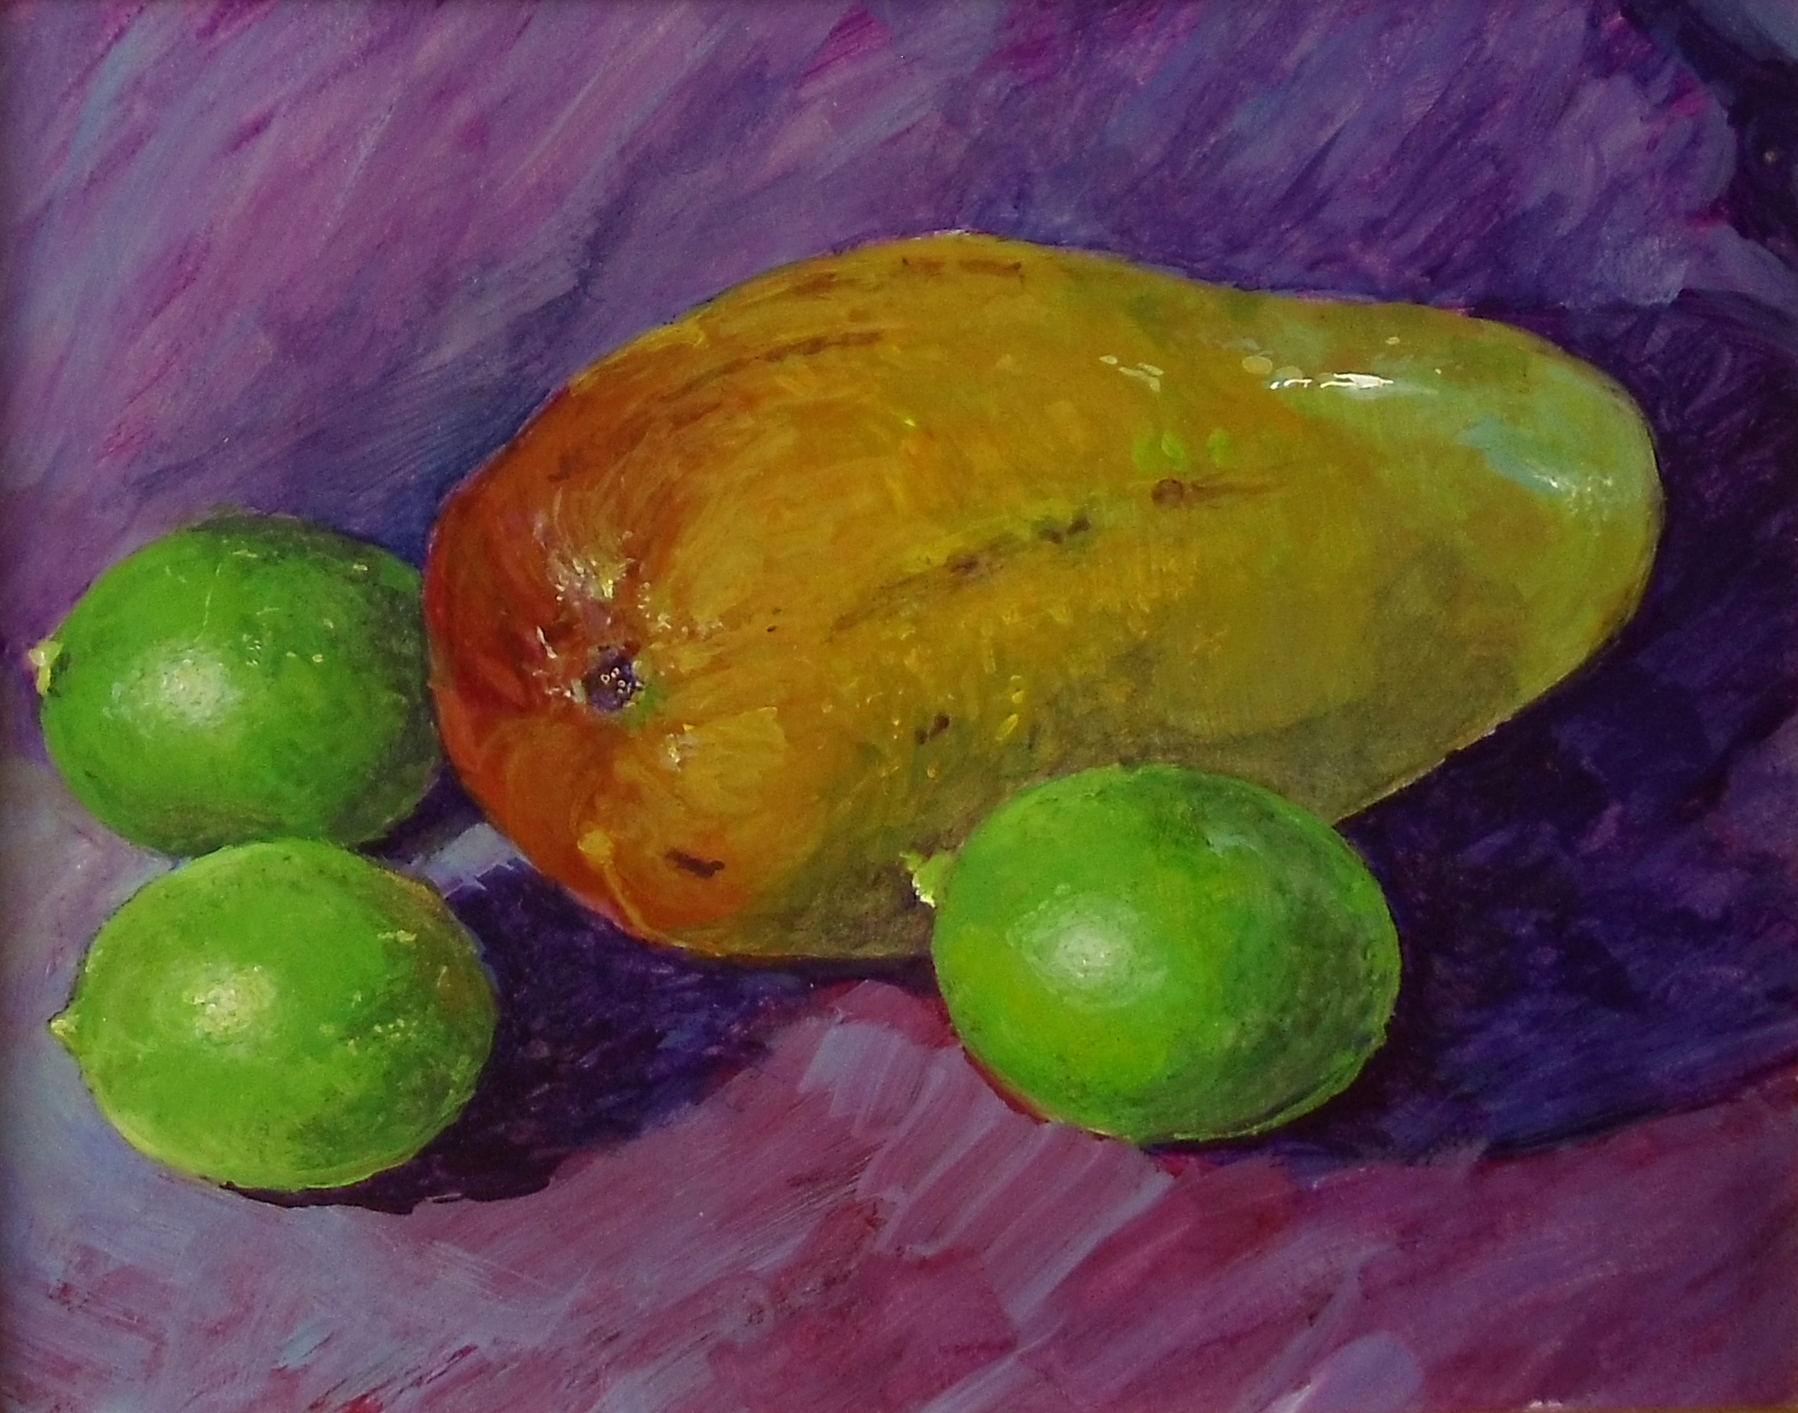 Mango with Limes - 2017